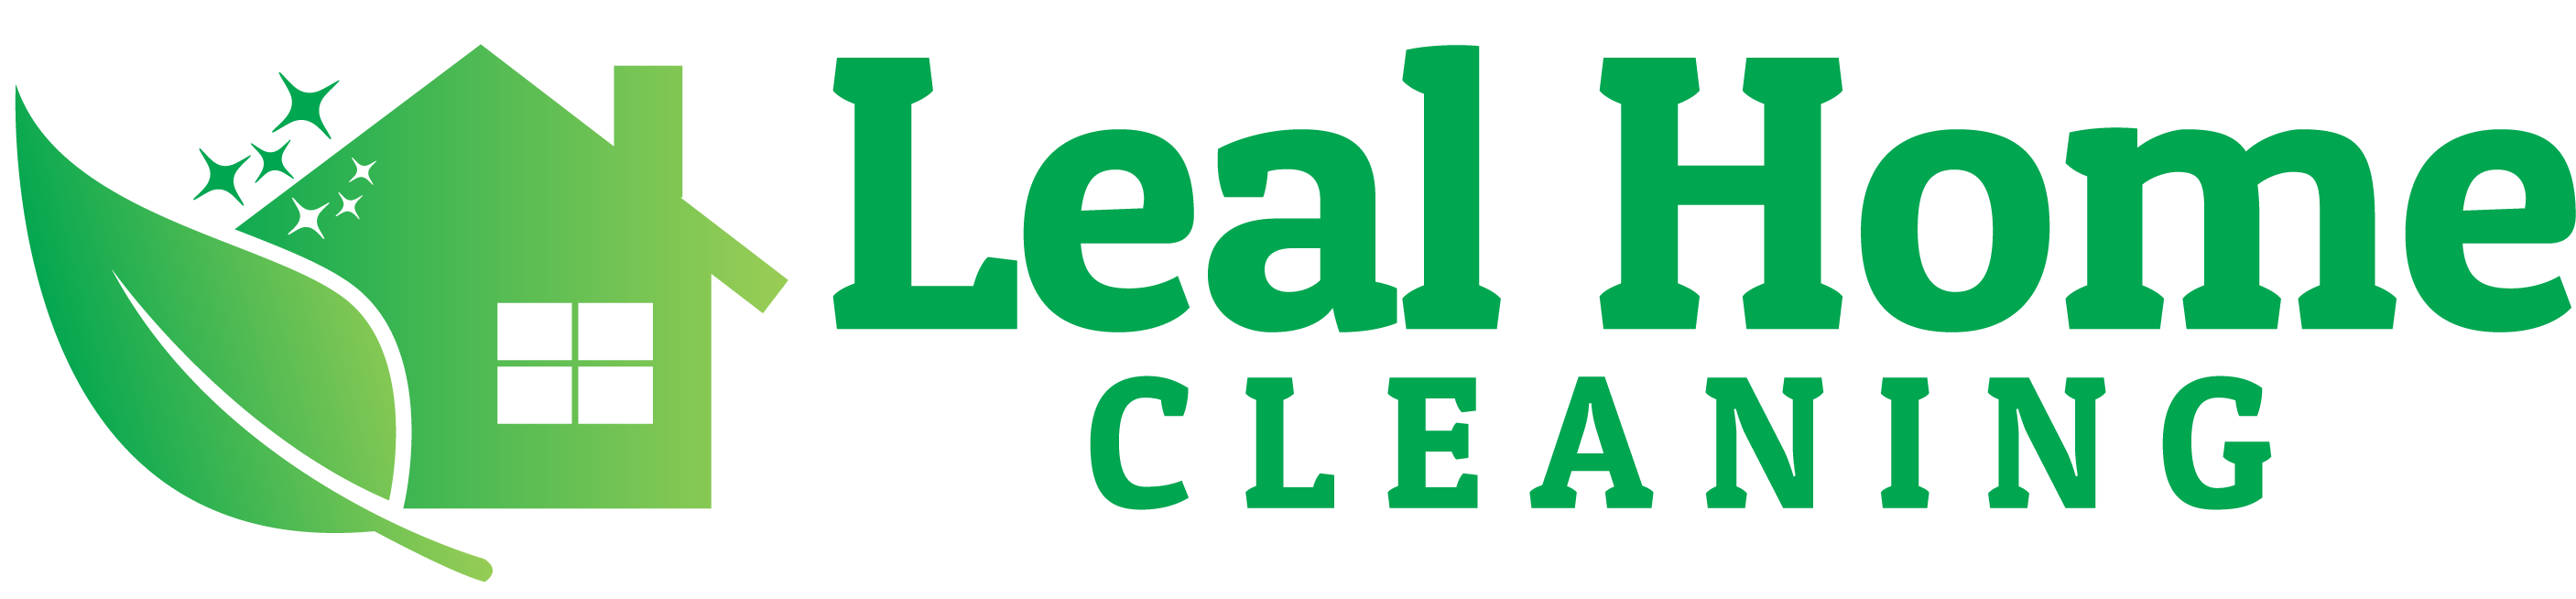 Leal Home Cleaning Logo